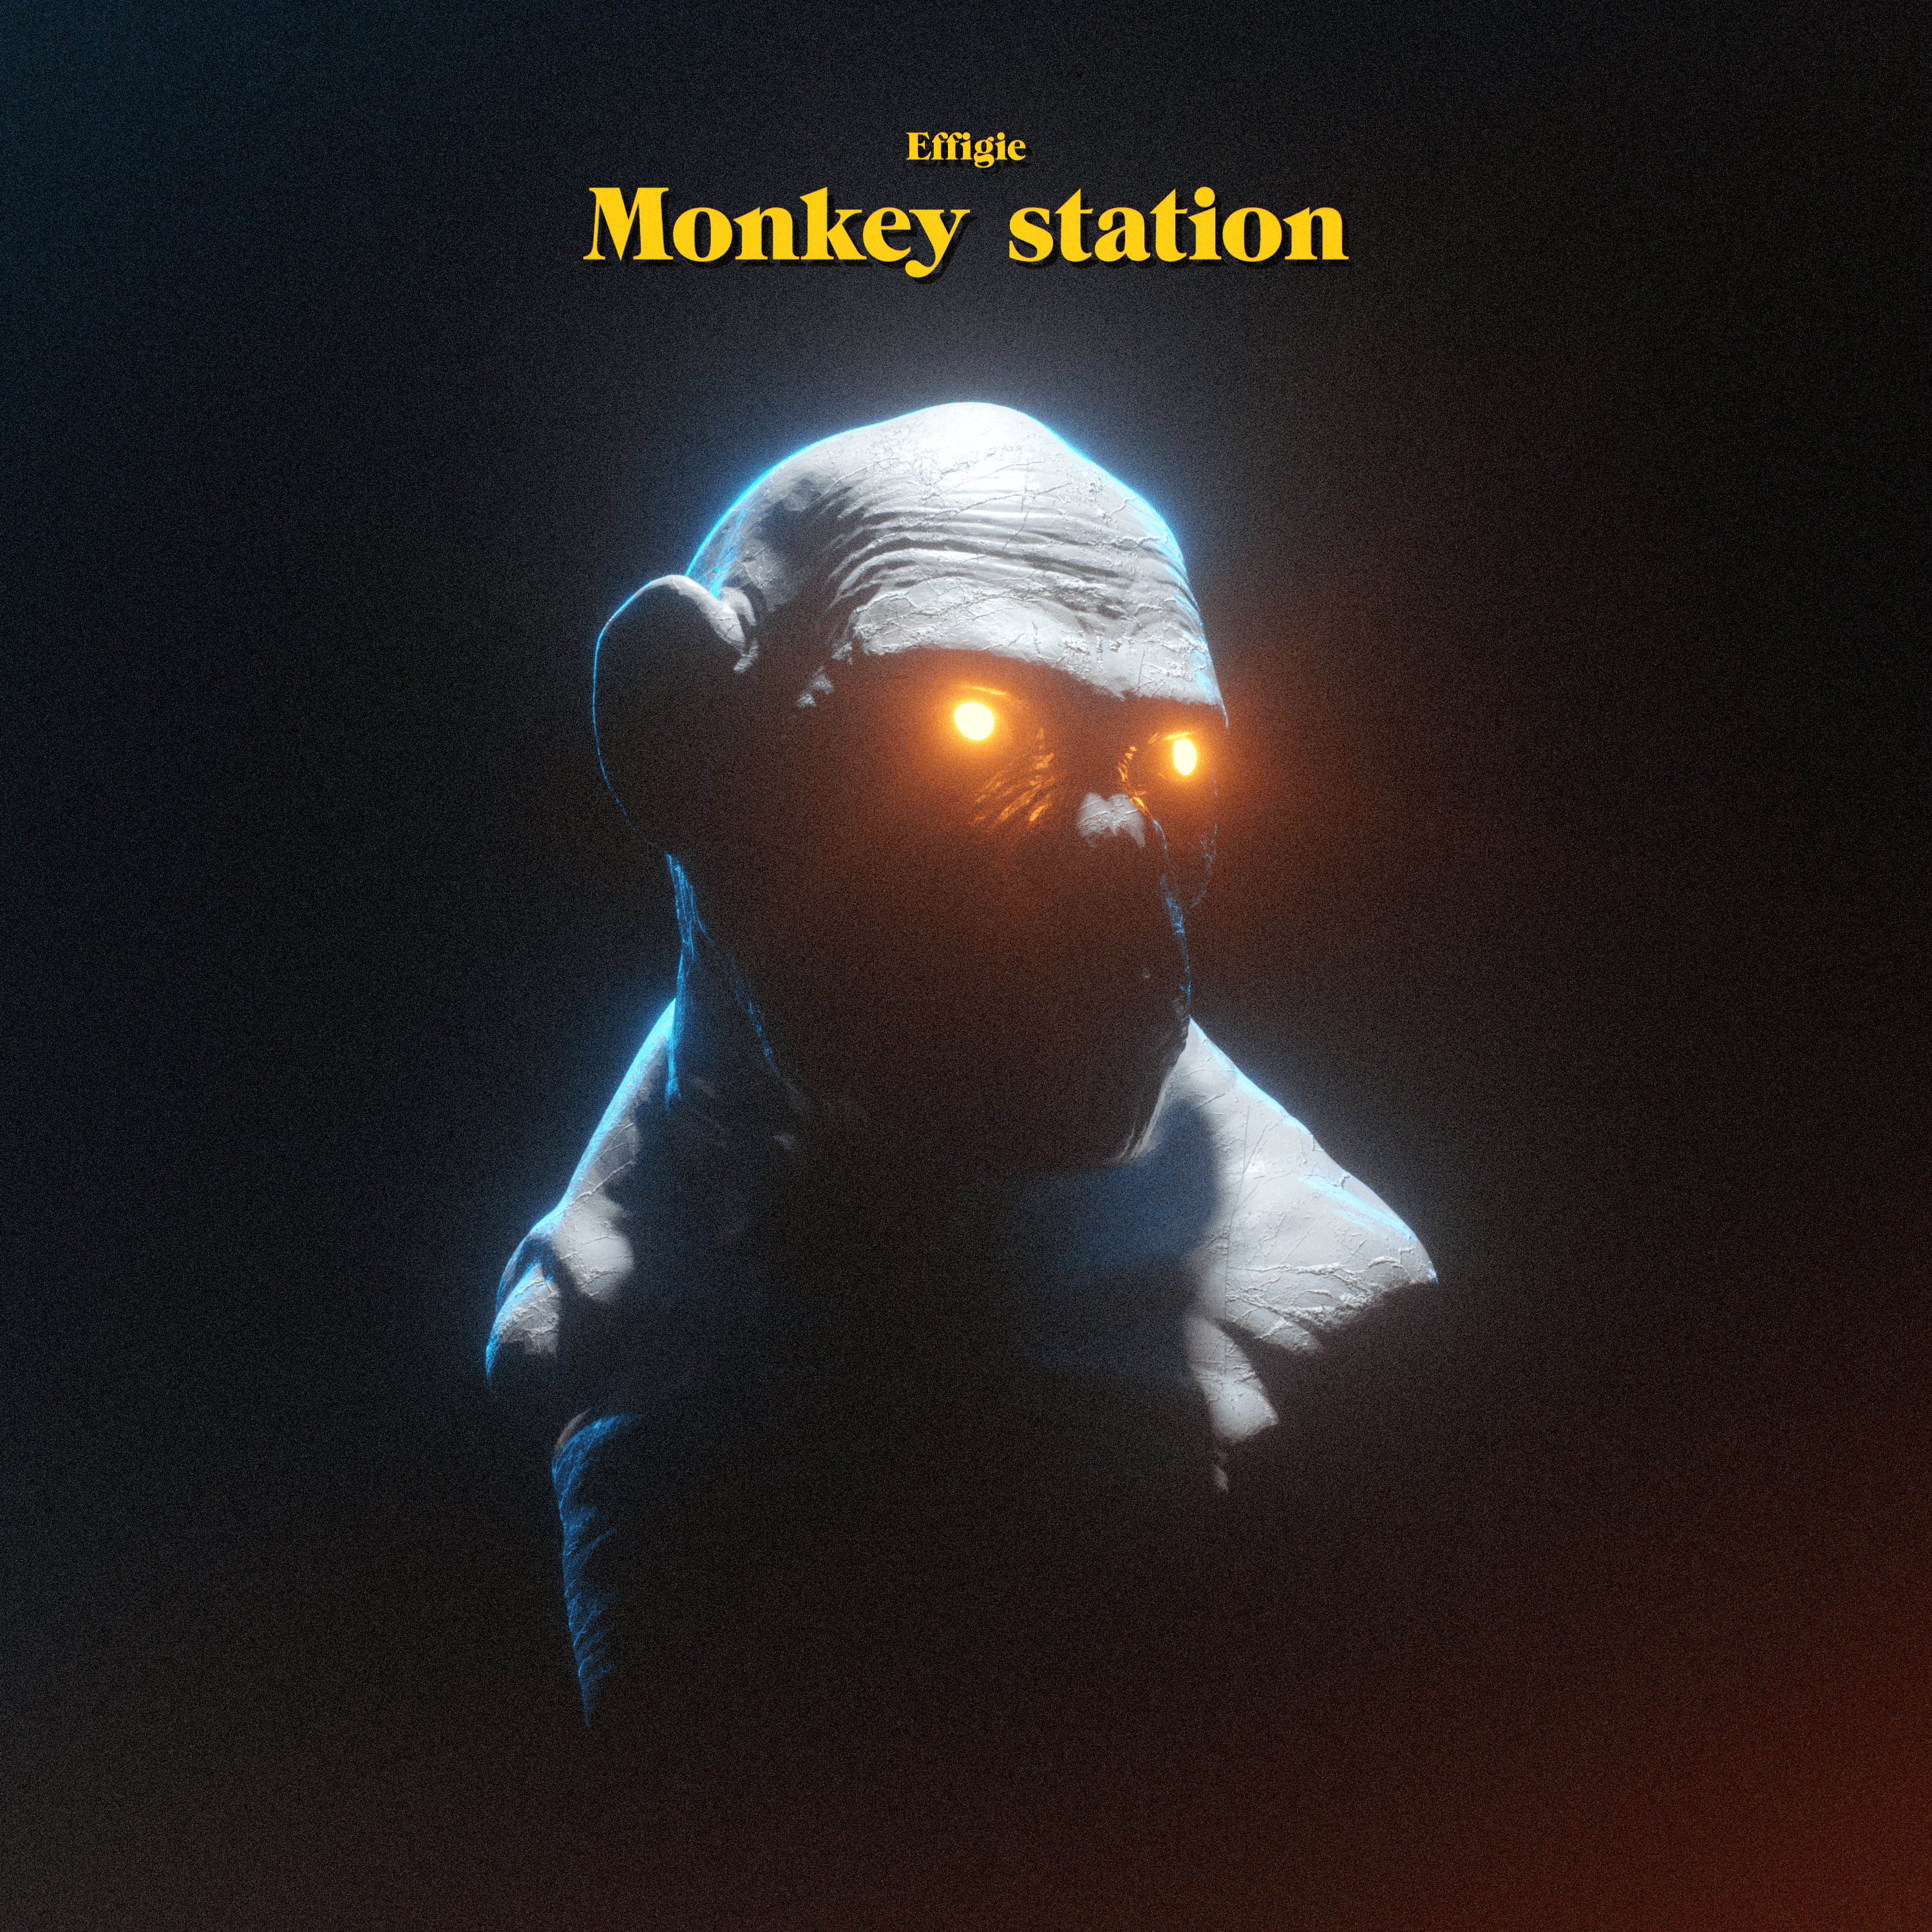 PREMIERE: EFFIGIE - Monkey Station